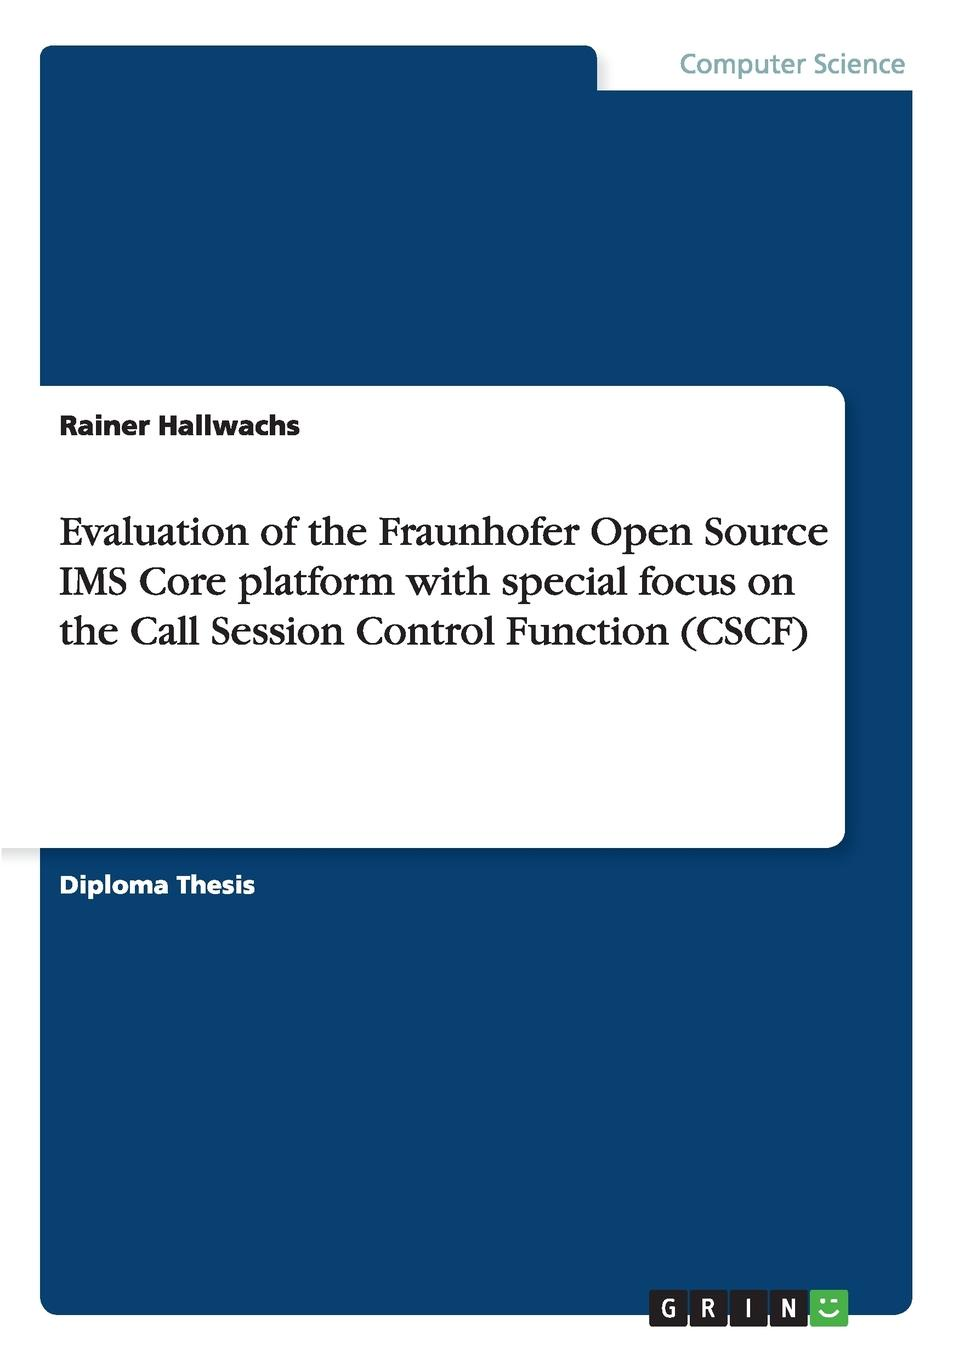 Rainer Hallwachs Evaluation of the Fraunhofer Open Source IMS Core platform with special focus on the Call Session Control Function (CSCF)